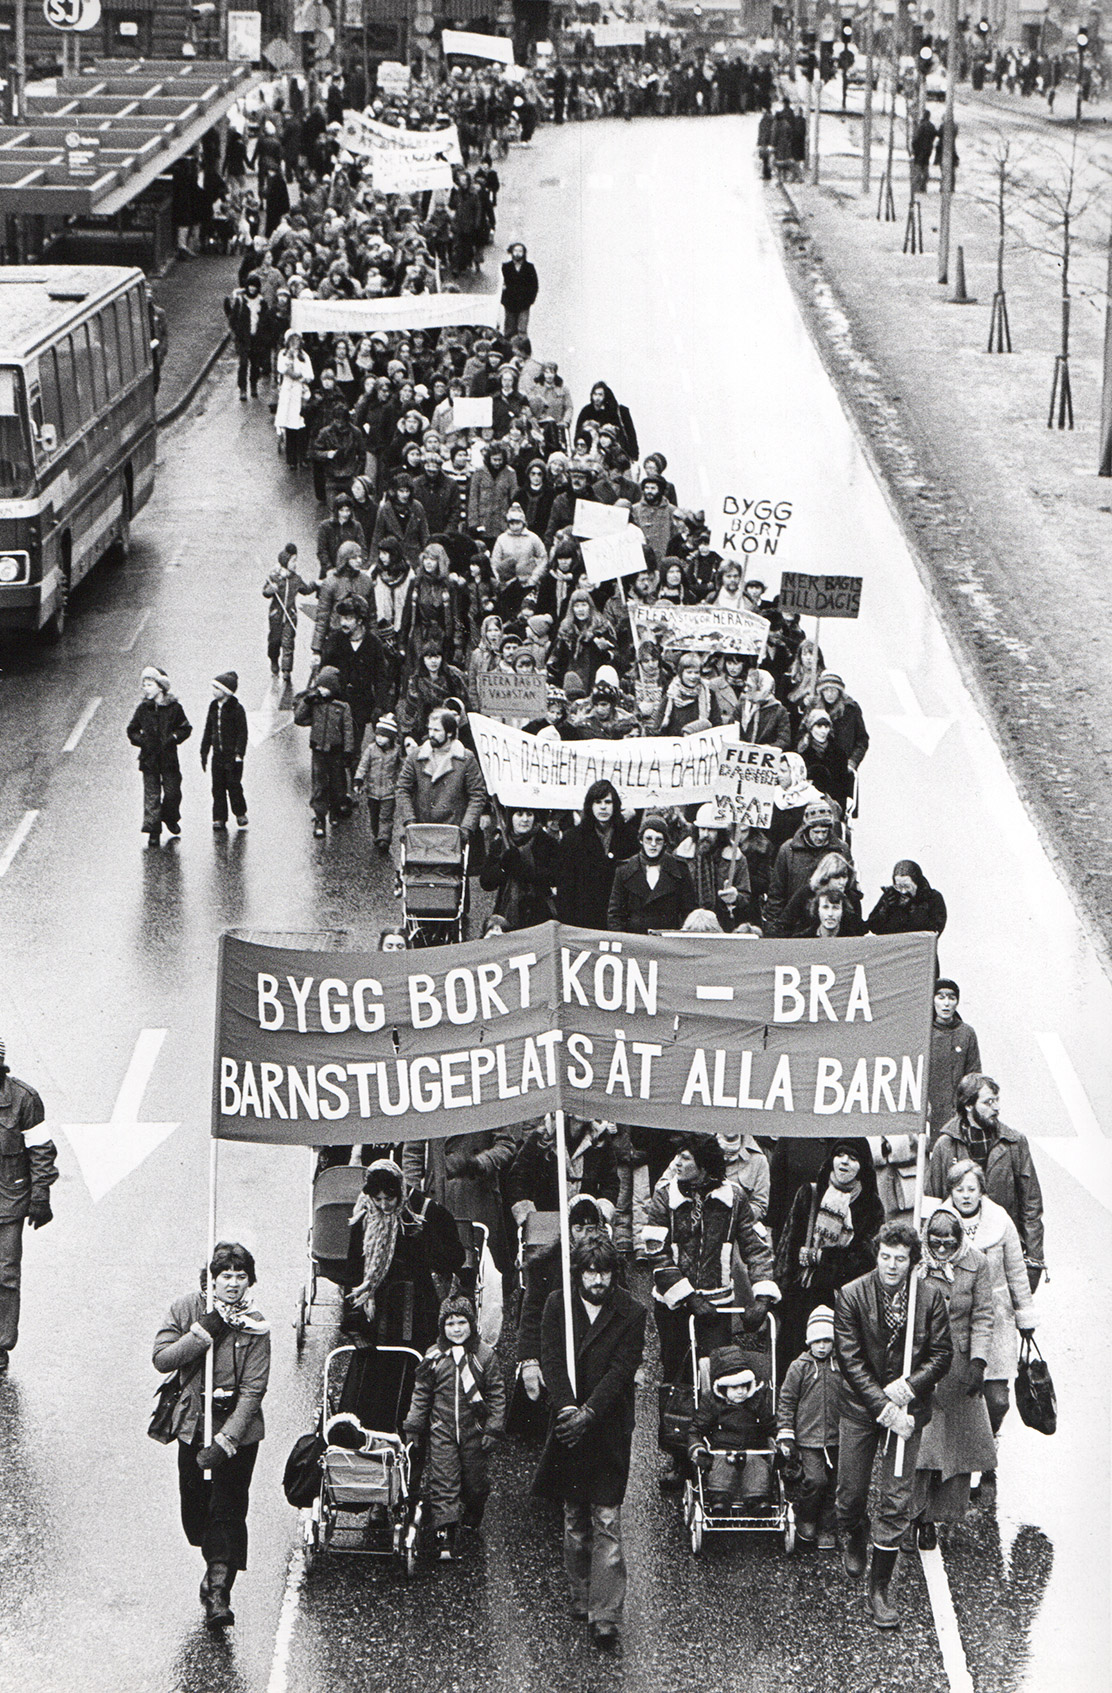 Line of people at a demonstration